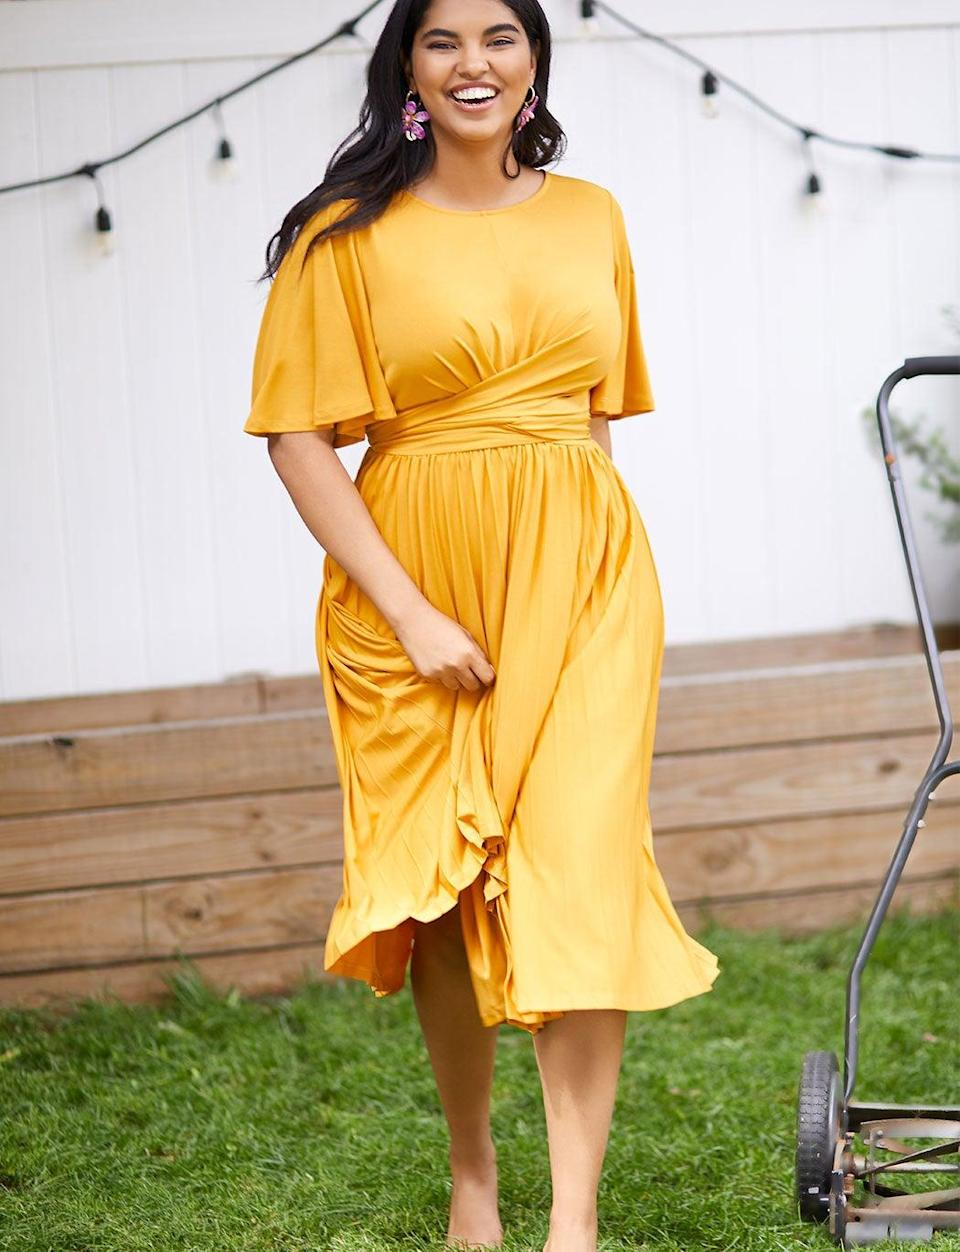 """Get <a href=""""https://www.eloquii.com/plus-size-new-arrivals"""" rel=""""nofollow noopener"""" target=""""_blank"""" data-ylk=""""slk:50% off select styles"""" class=""""link rapid-noclick-resp"""">50% off select styles</a> on Monday using checkout code ONEDAY. <br> <br> <strong>Eloquii</strong> Wrap Dress with Pleated Skirt, $, available at <a href=""""https://go.skimresources.com/?id=30283X879131&url=https%3A%2F%2Fwww.eloquii.com%2Fwrap-dress-with-pleated-skirt%2F1228446.html%3Fdwvar_1228446_colorCode%3D25"""" rel=""""nofollow noopener"""" target=""""_blank"""" data-ylk=""""slk:Eloquii"""" class=""""link rapid-noclick-resp"""">Eloquii</a>"""